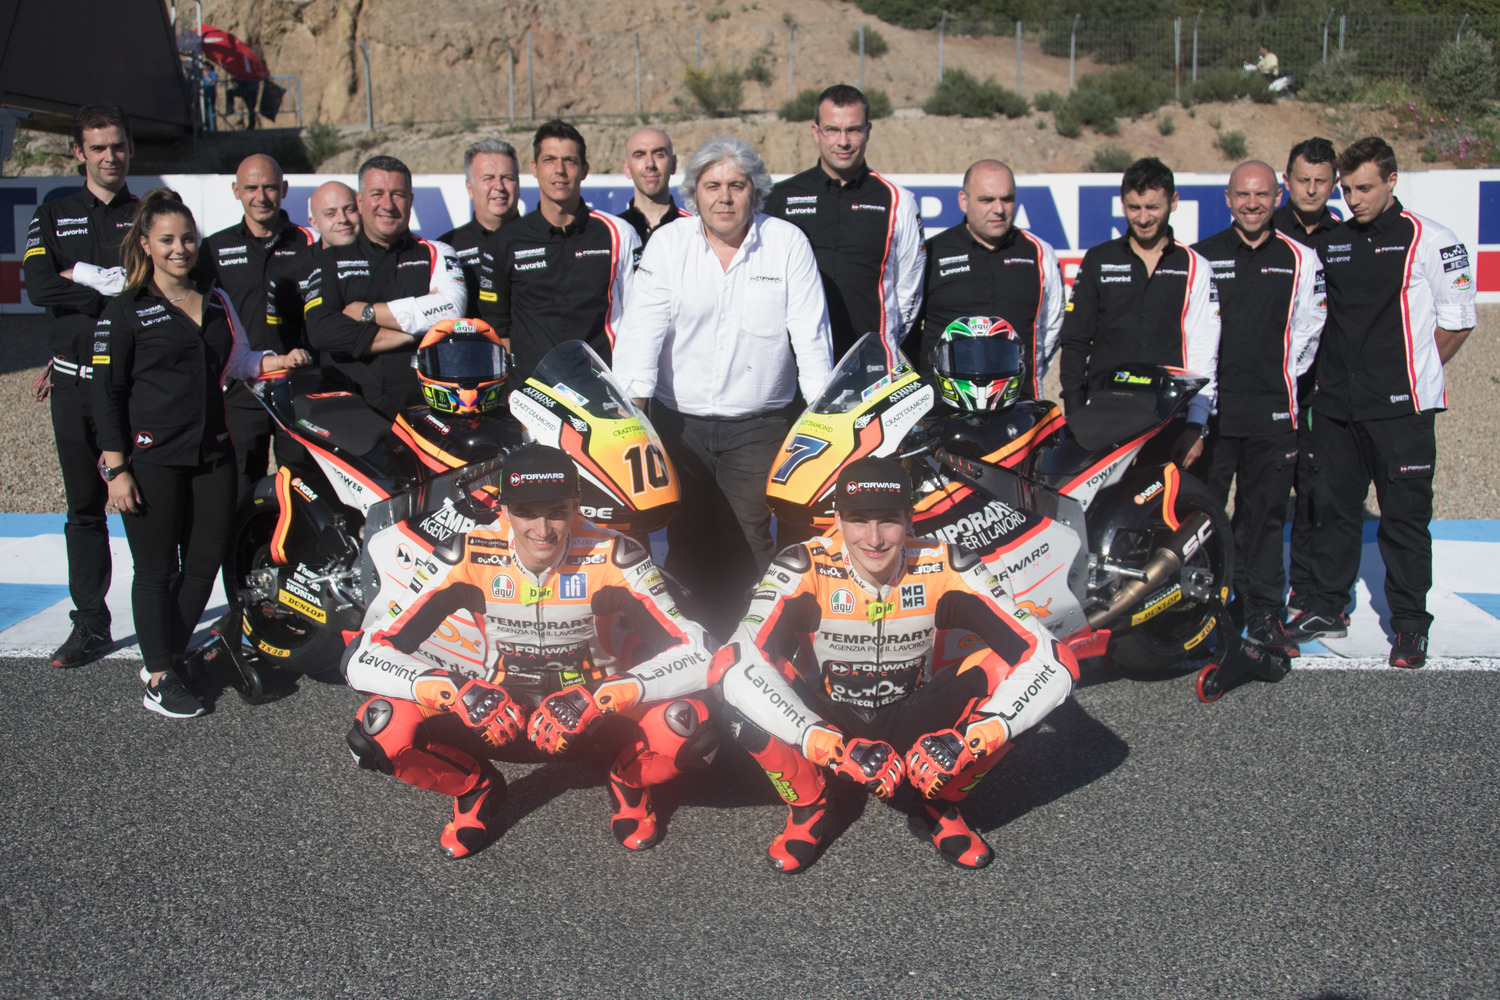 Lorenzo Baldassarri and Luca Marini will be riding for Forward also in 2017